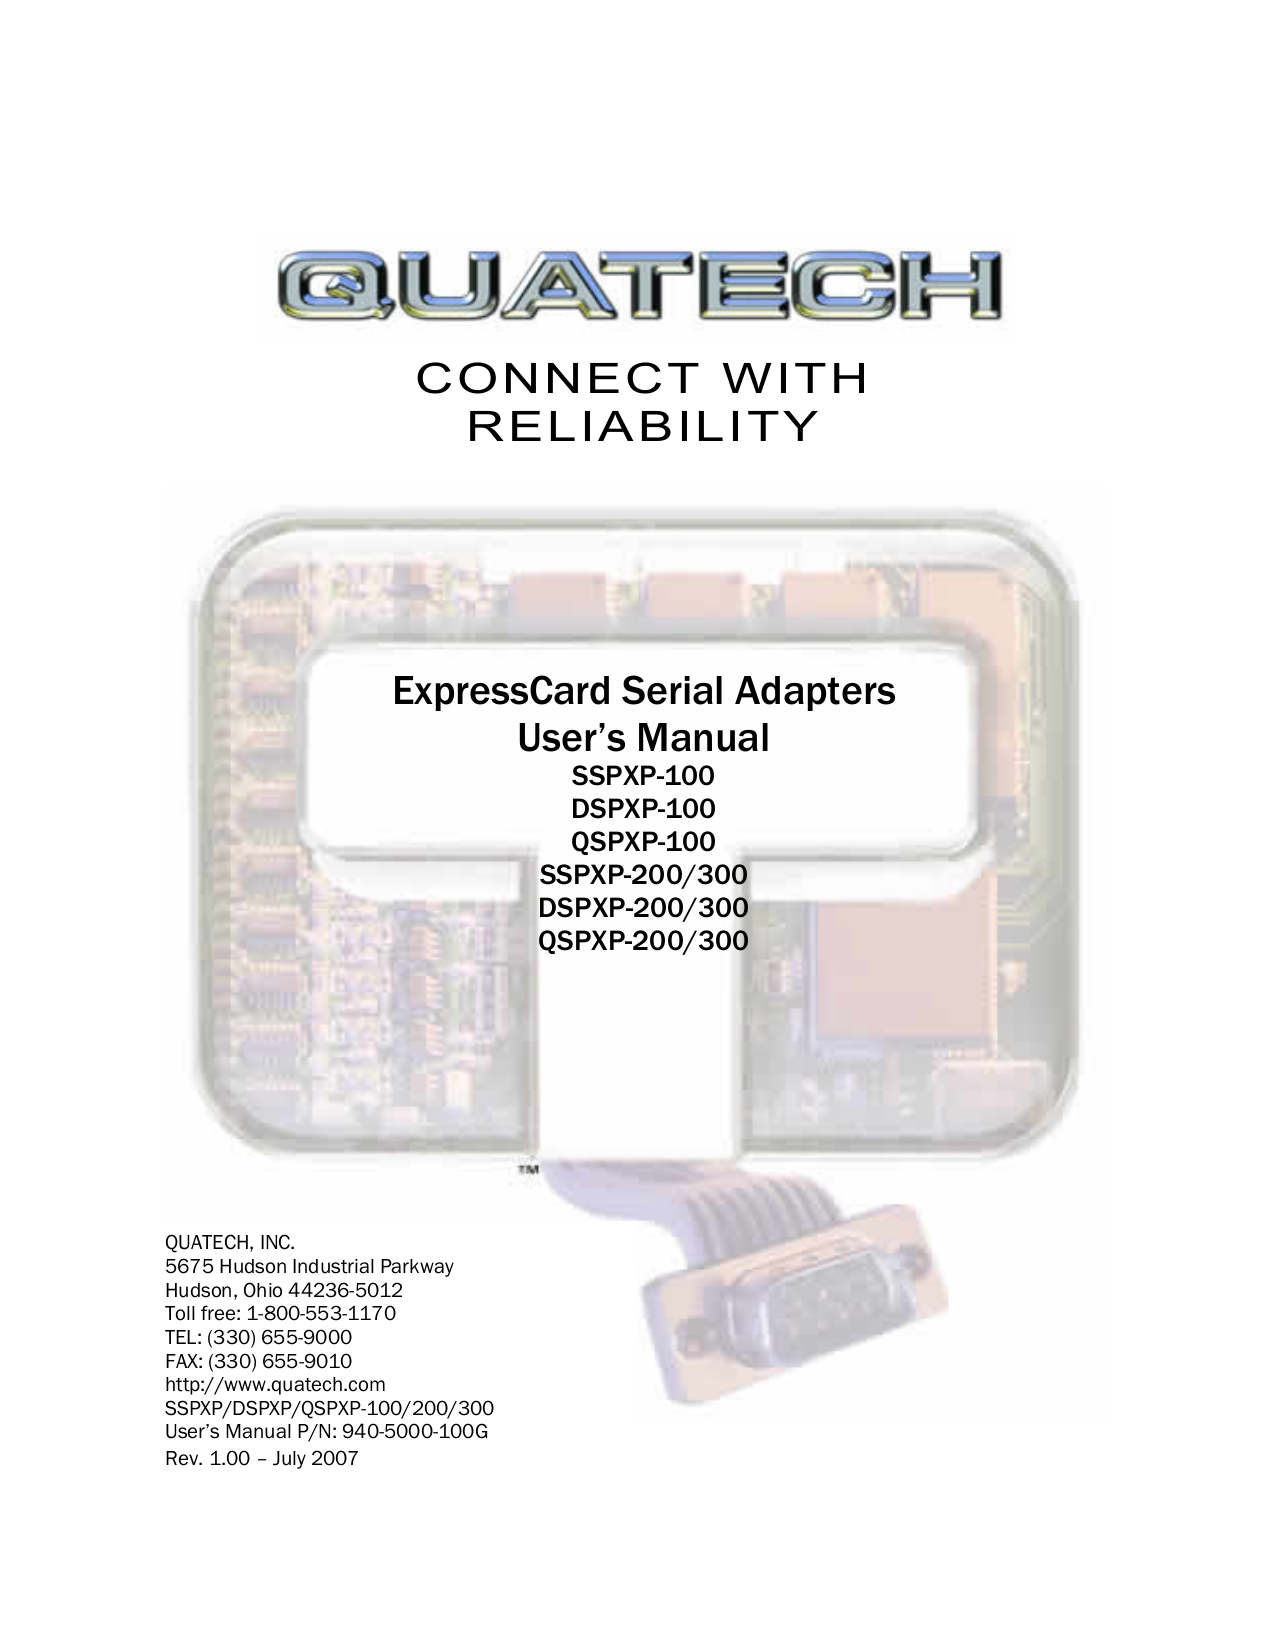 pdf for Quatech Other DSPXP-300 PCI Express Devices manual